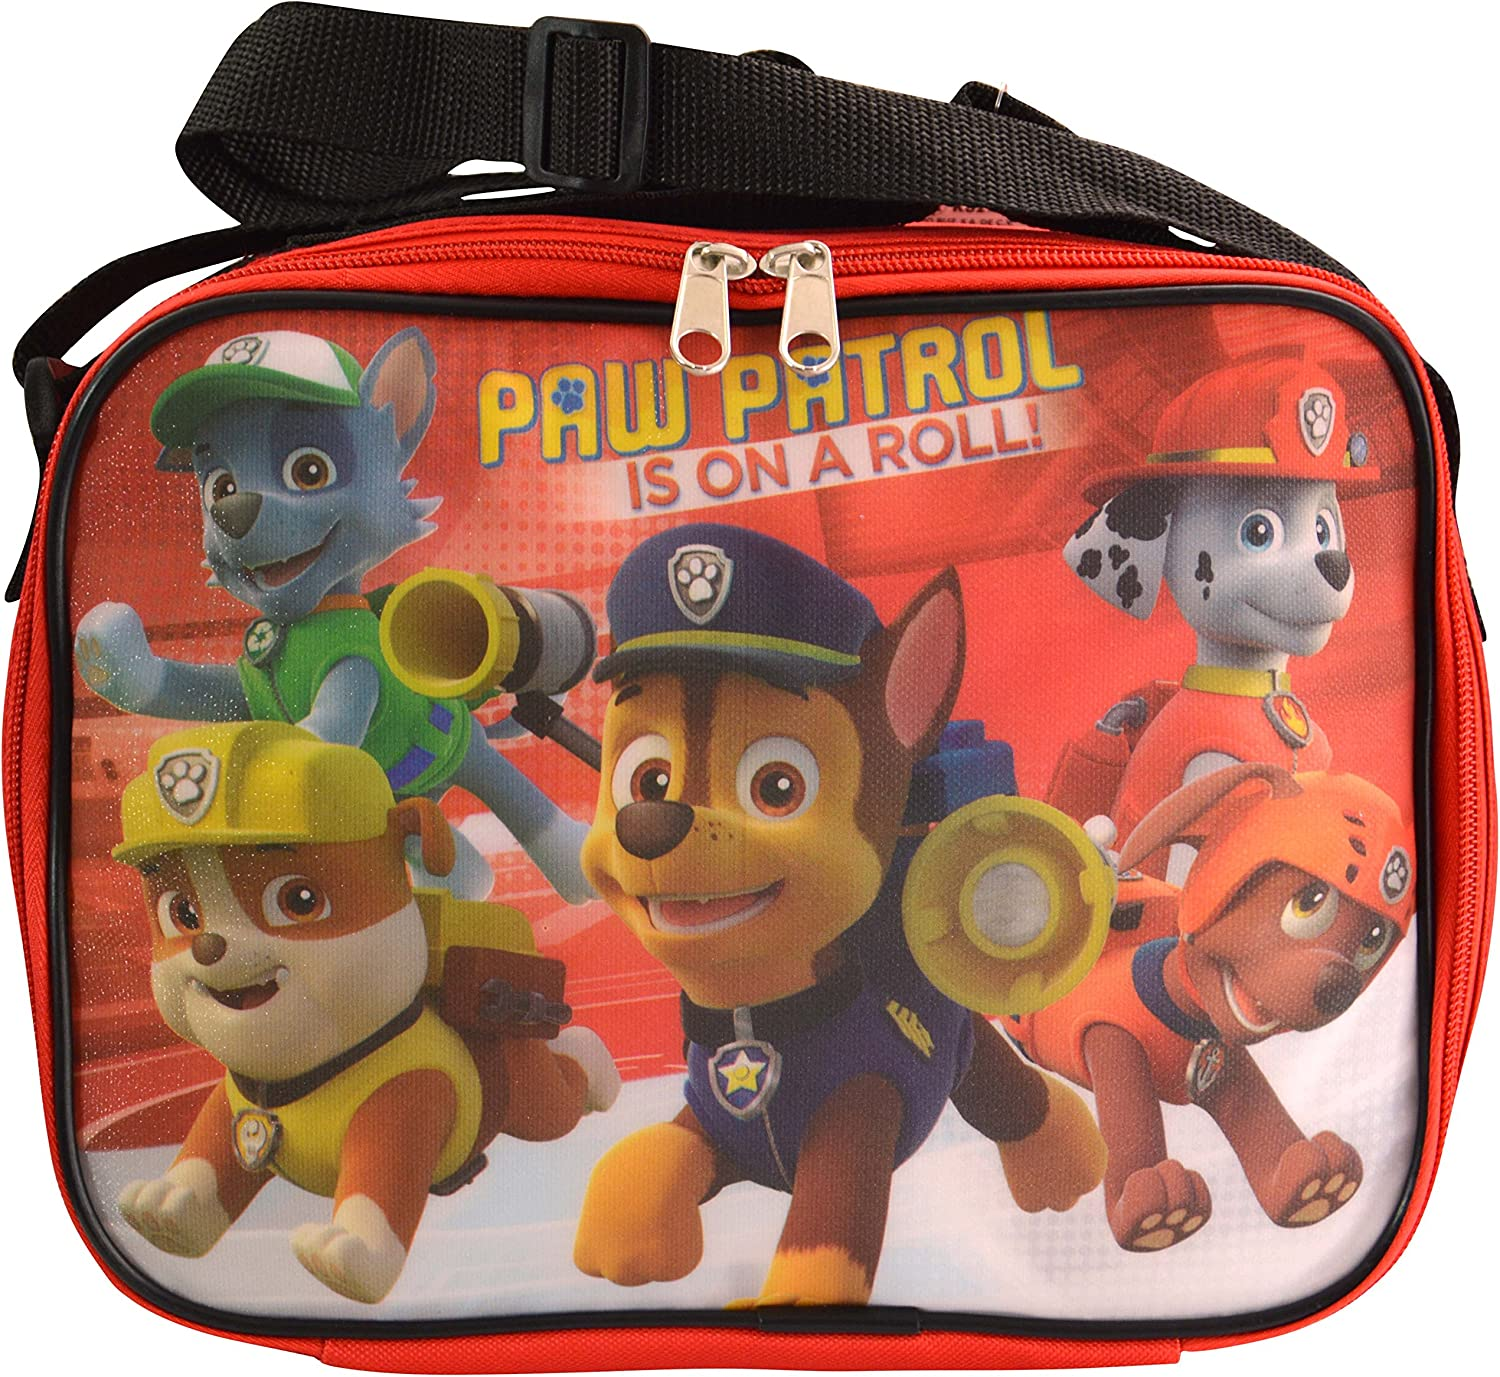 Insulated Paw Patrol Soft Lunch Box Bag School Marshall Chase Rubble Nick Jr